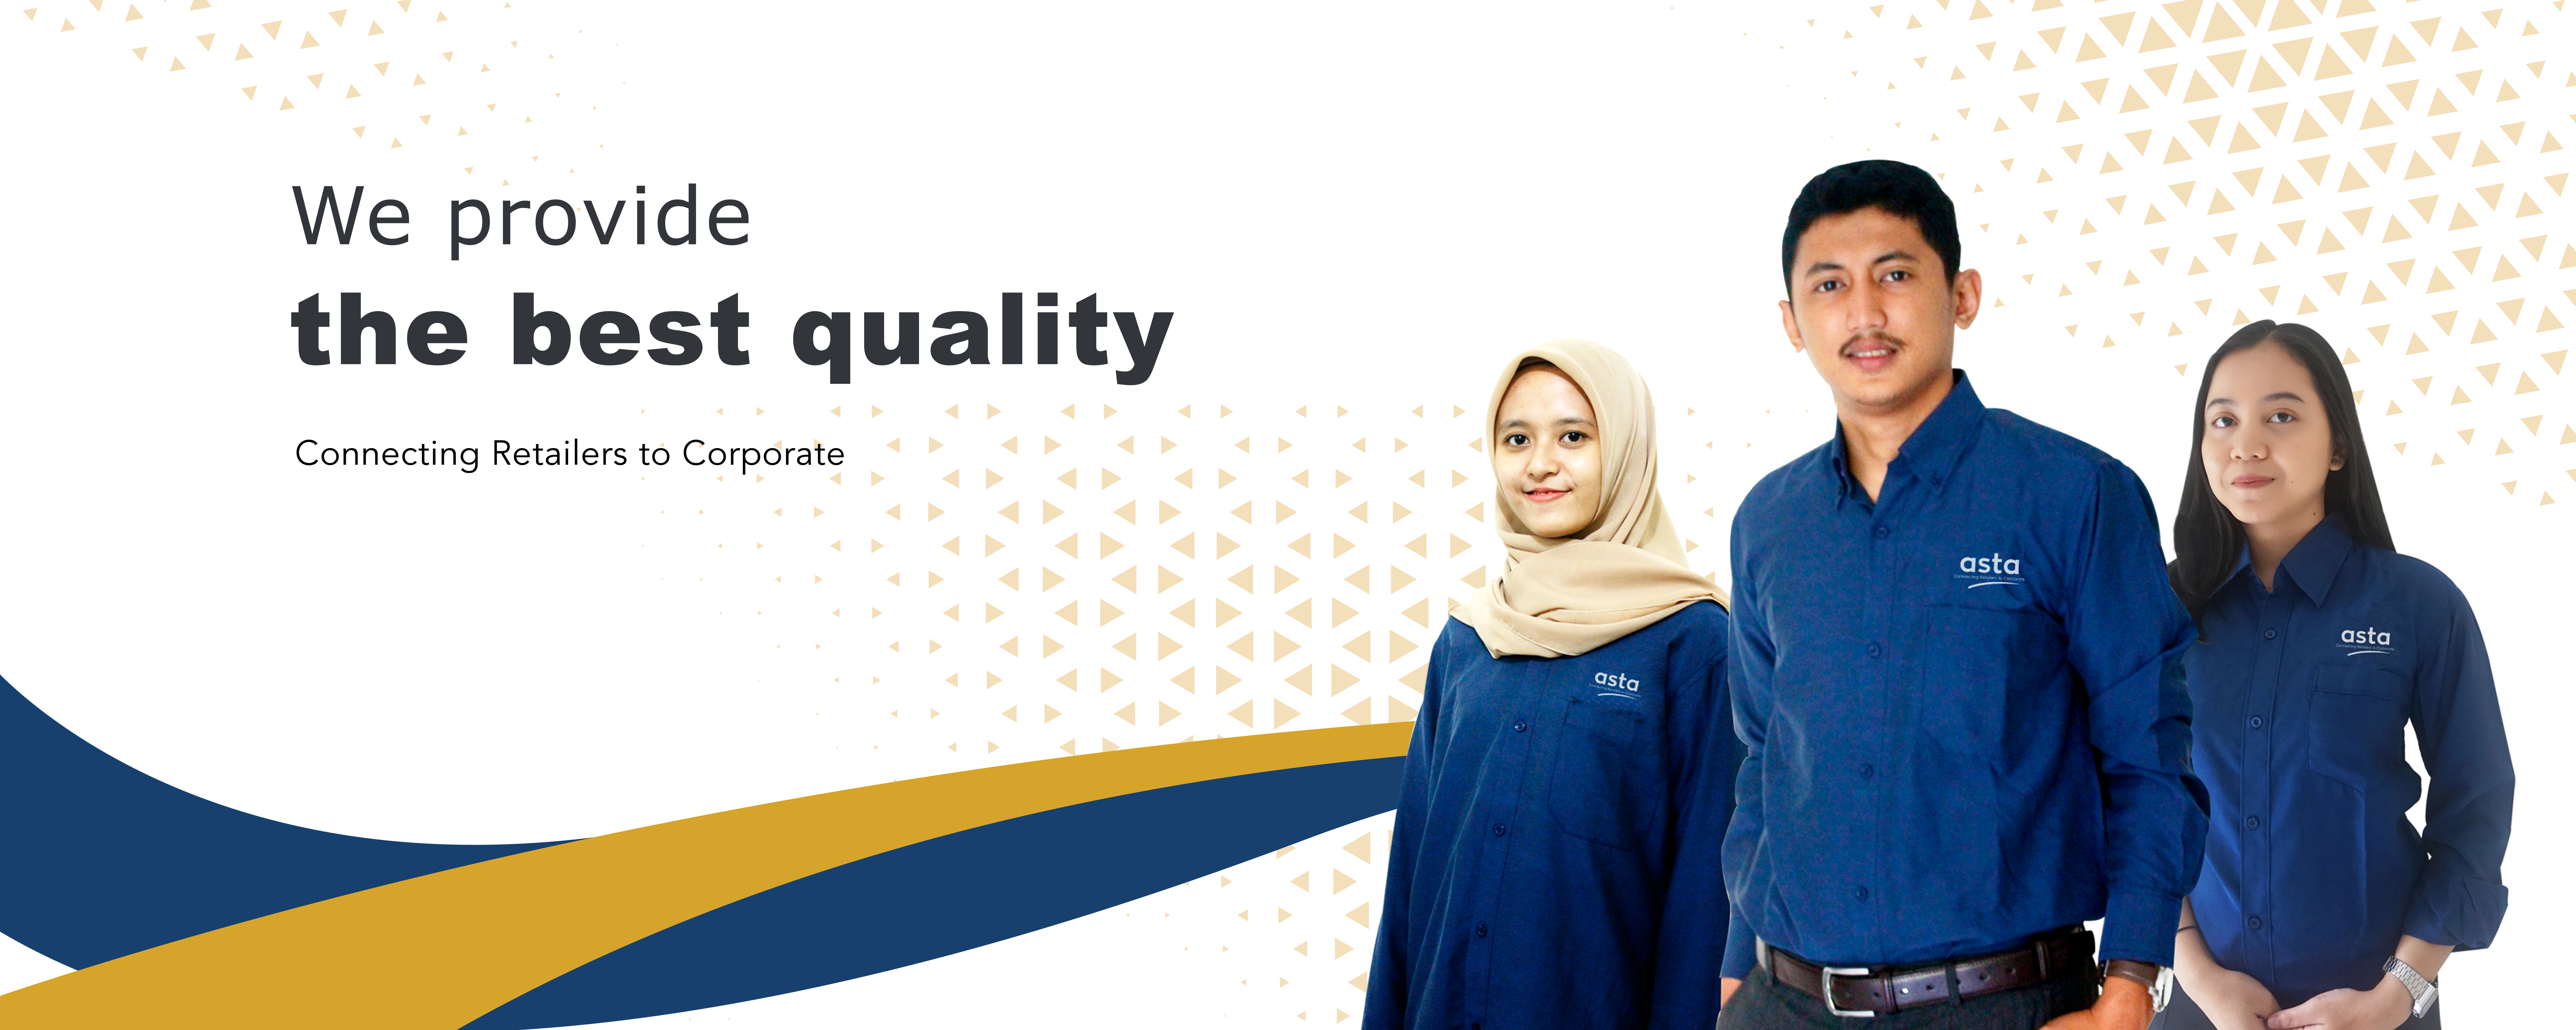 banner ( We provide the best quality ) copy